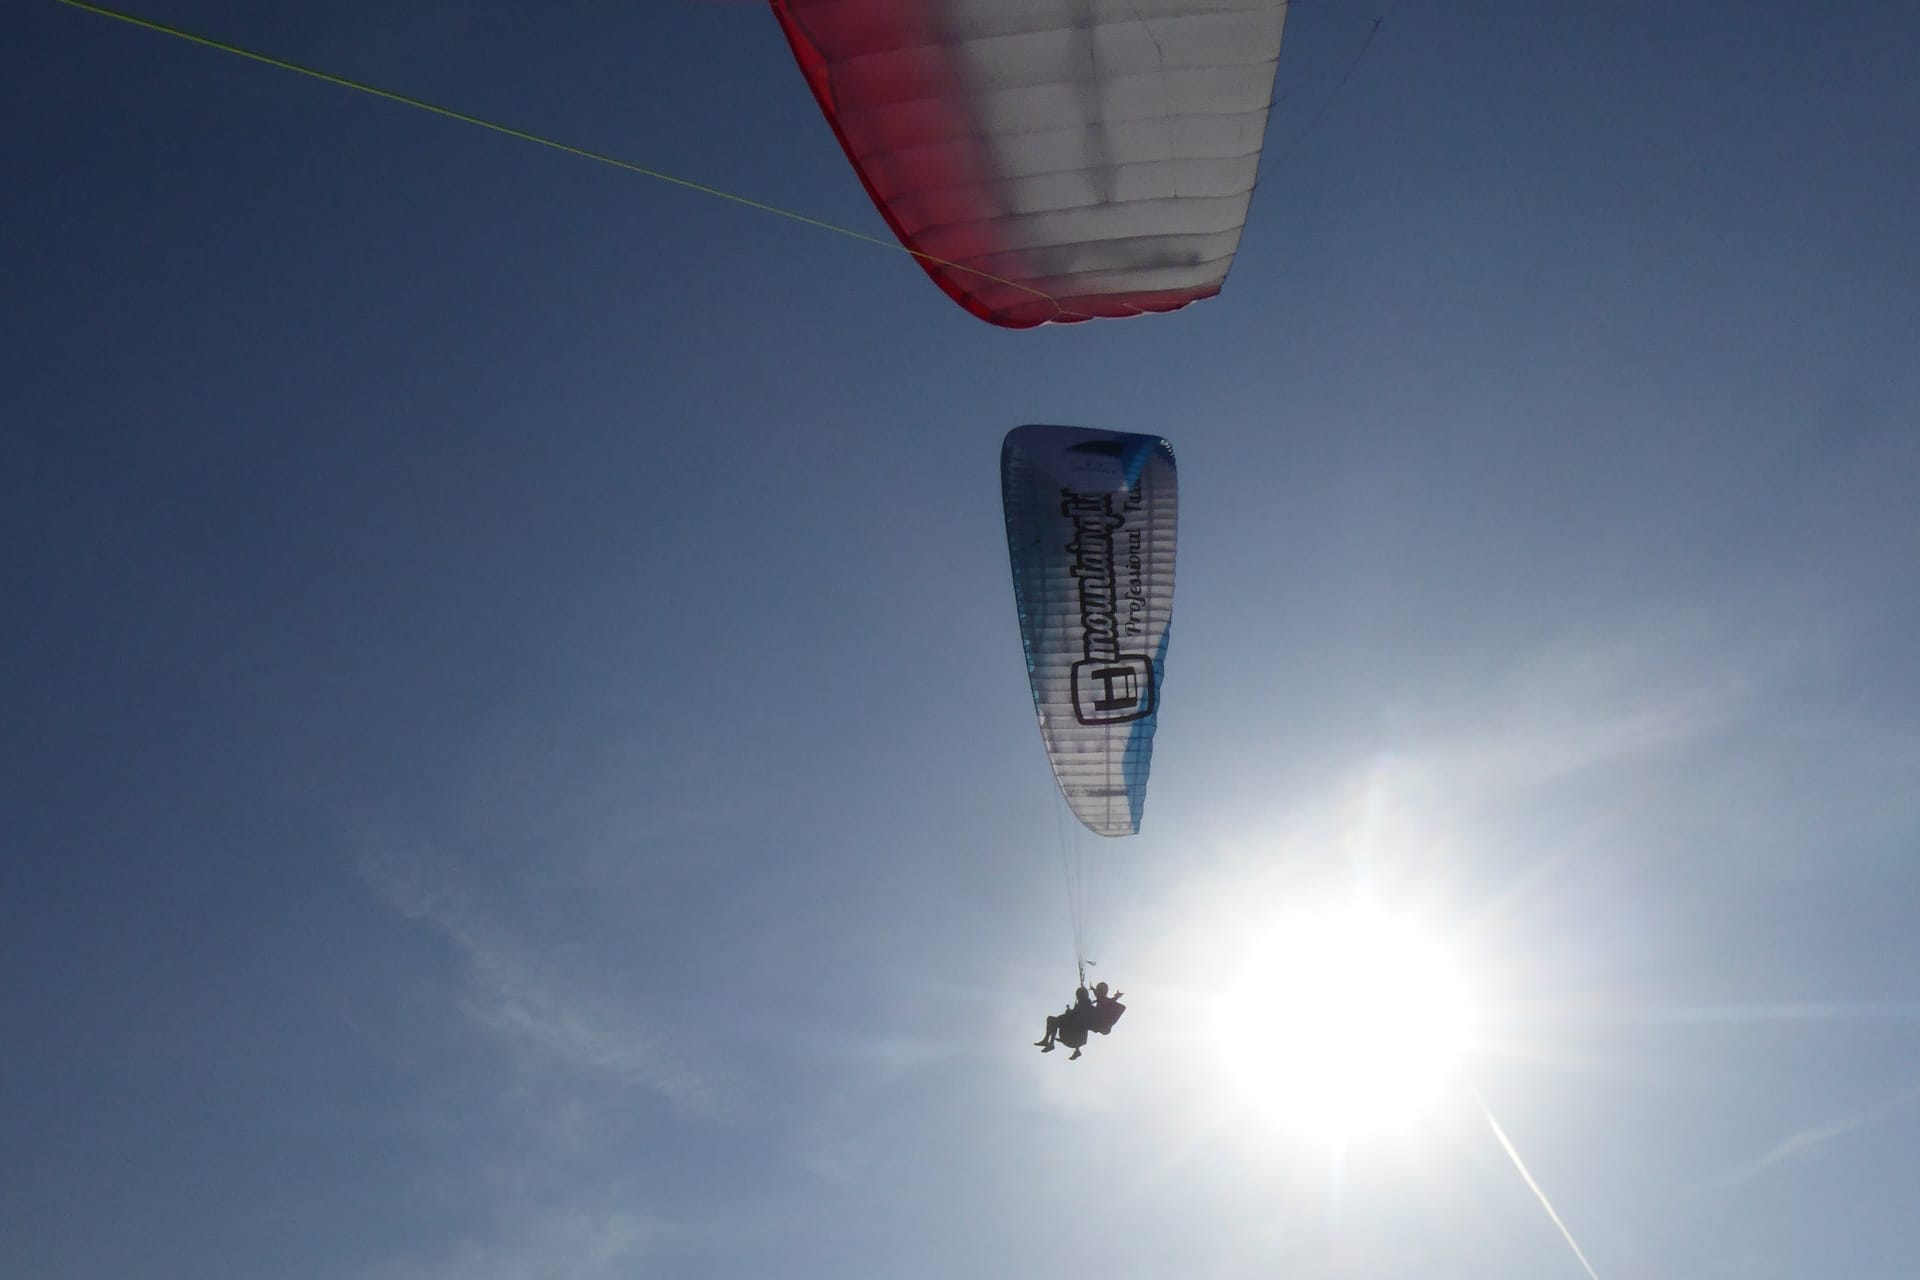 Paragliding with Friends